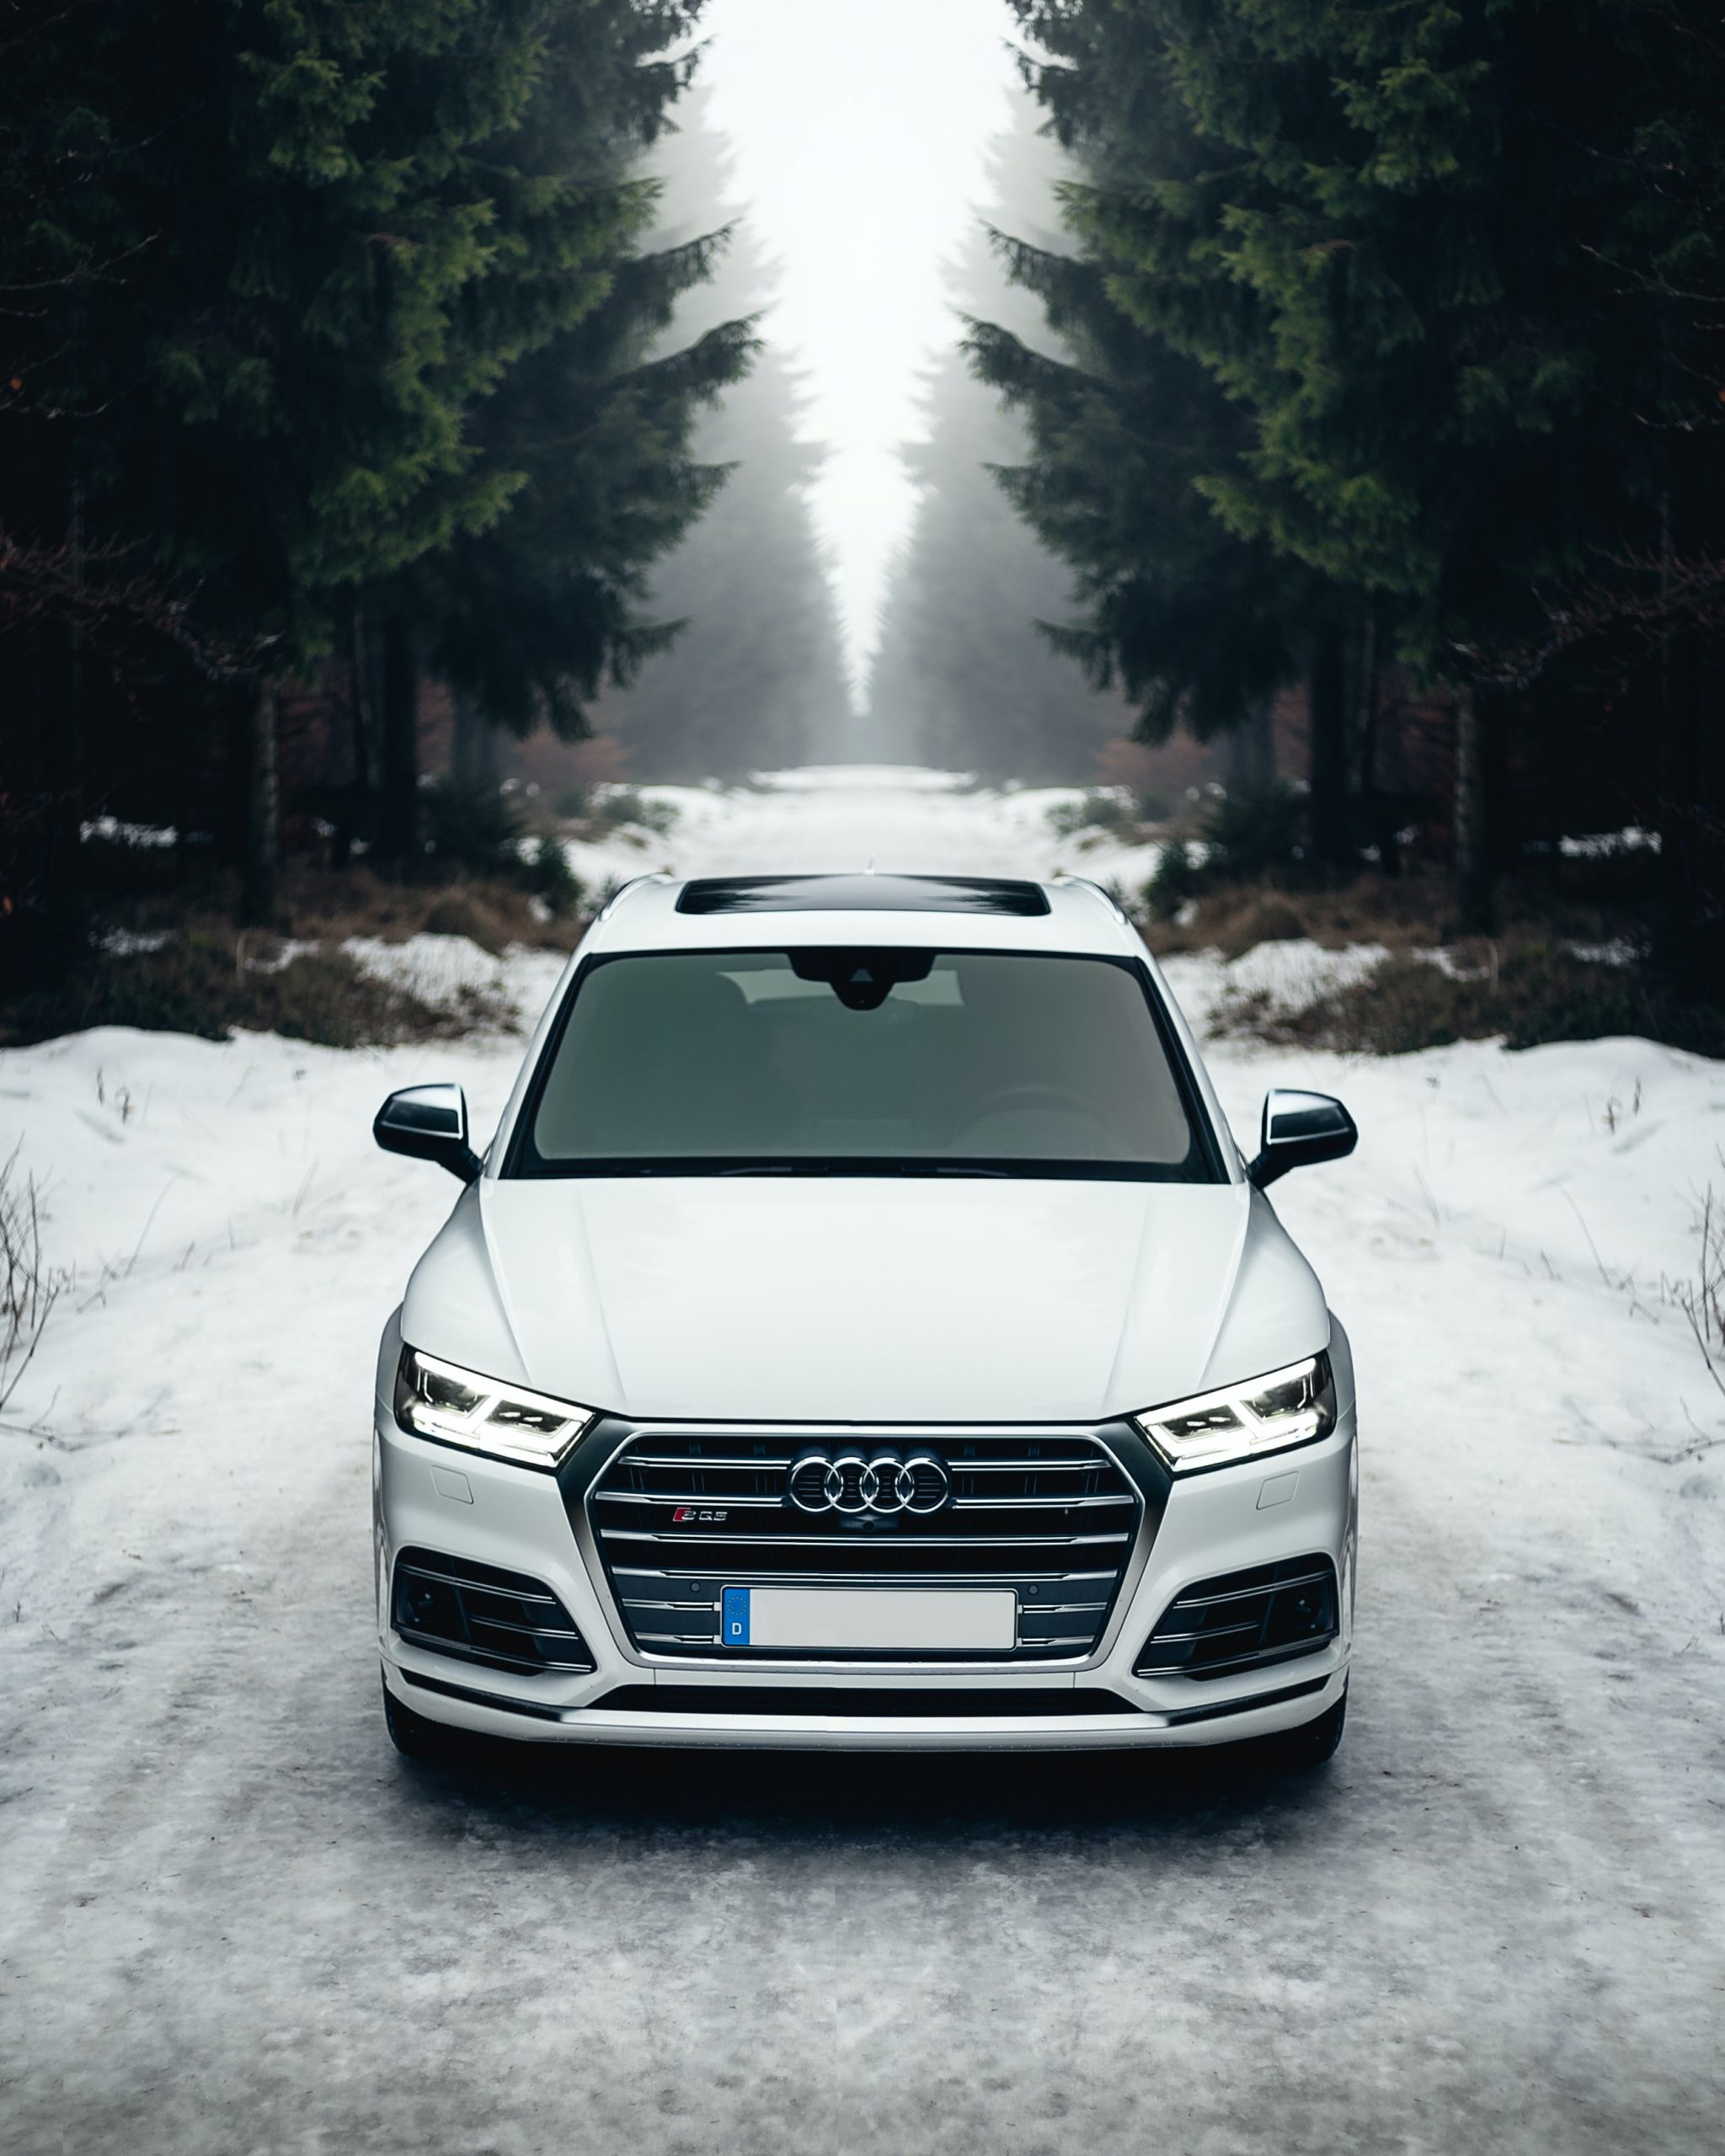 Audi Q series in winter